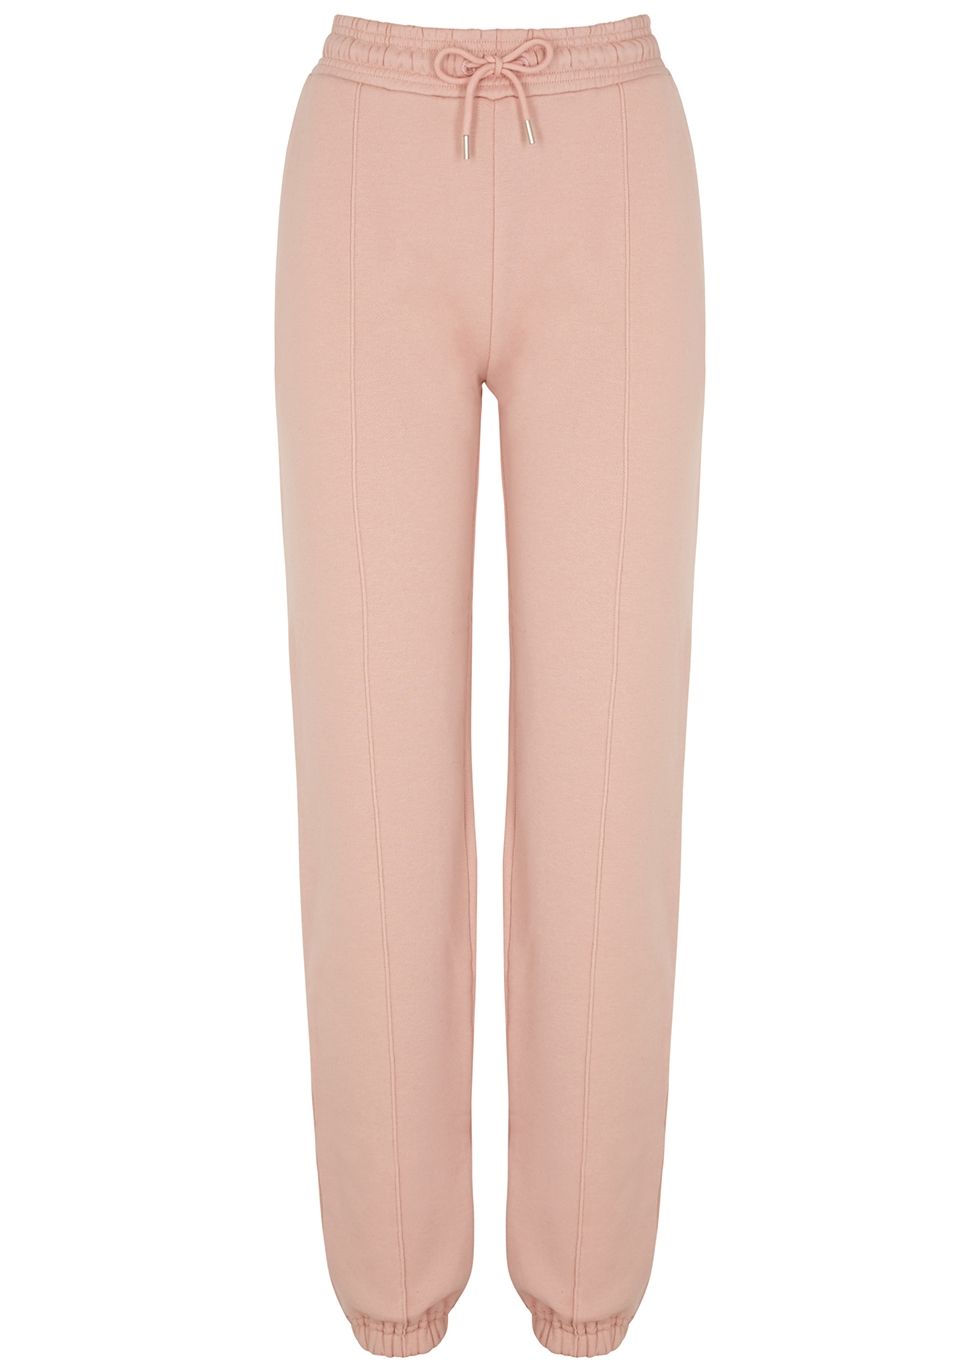 Light pink cotton sweatpants